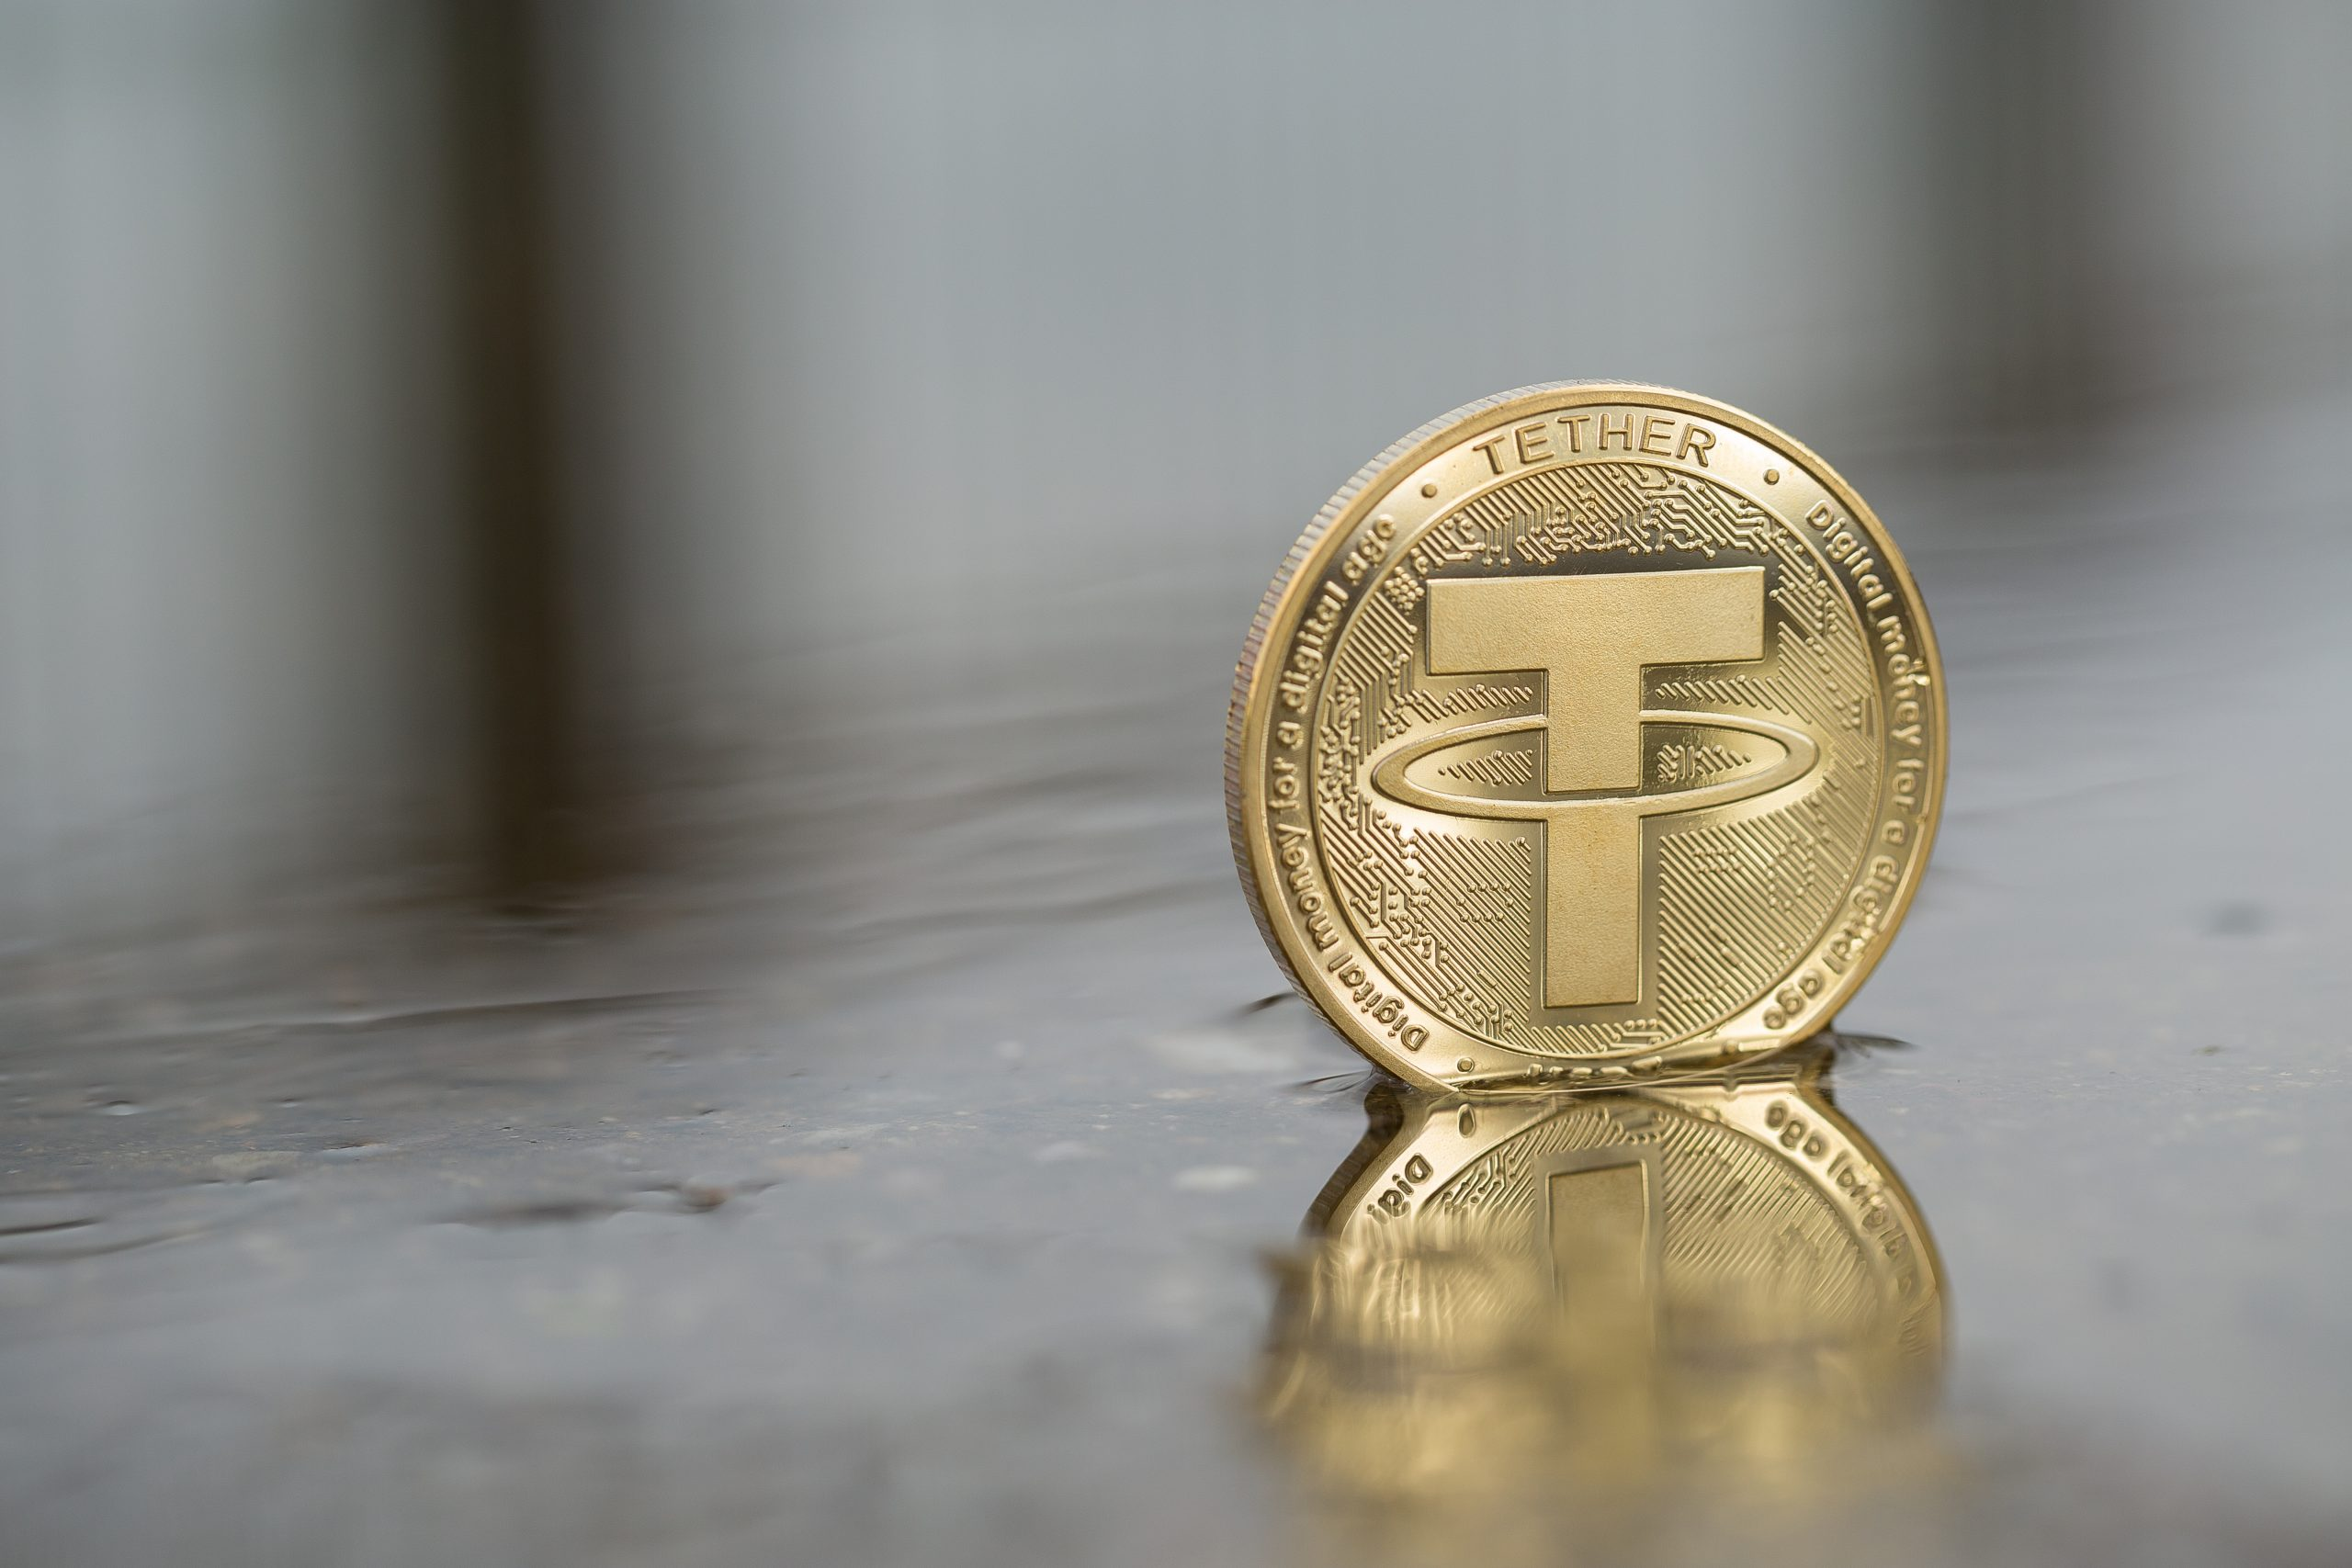 Is Tether Appropriate a Scam to Enrich Bitcoin Investors?